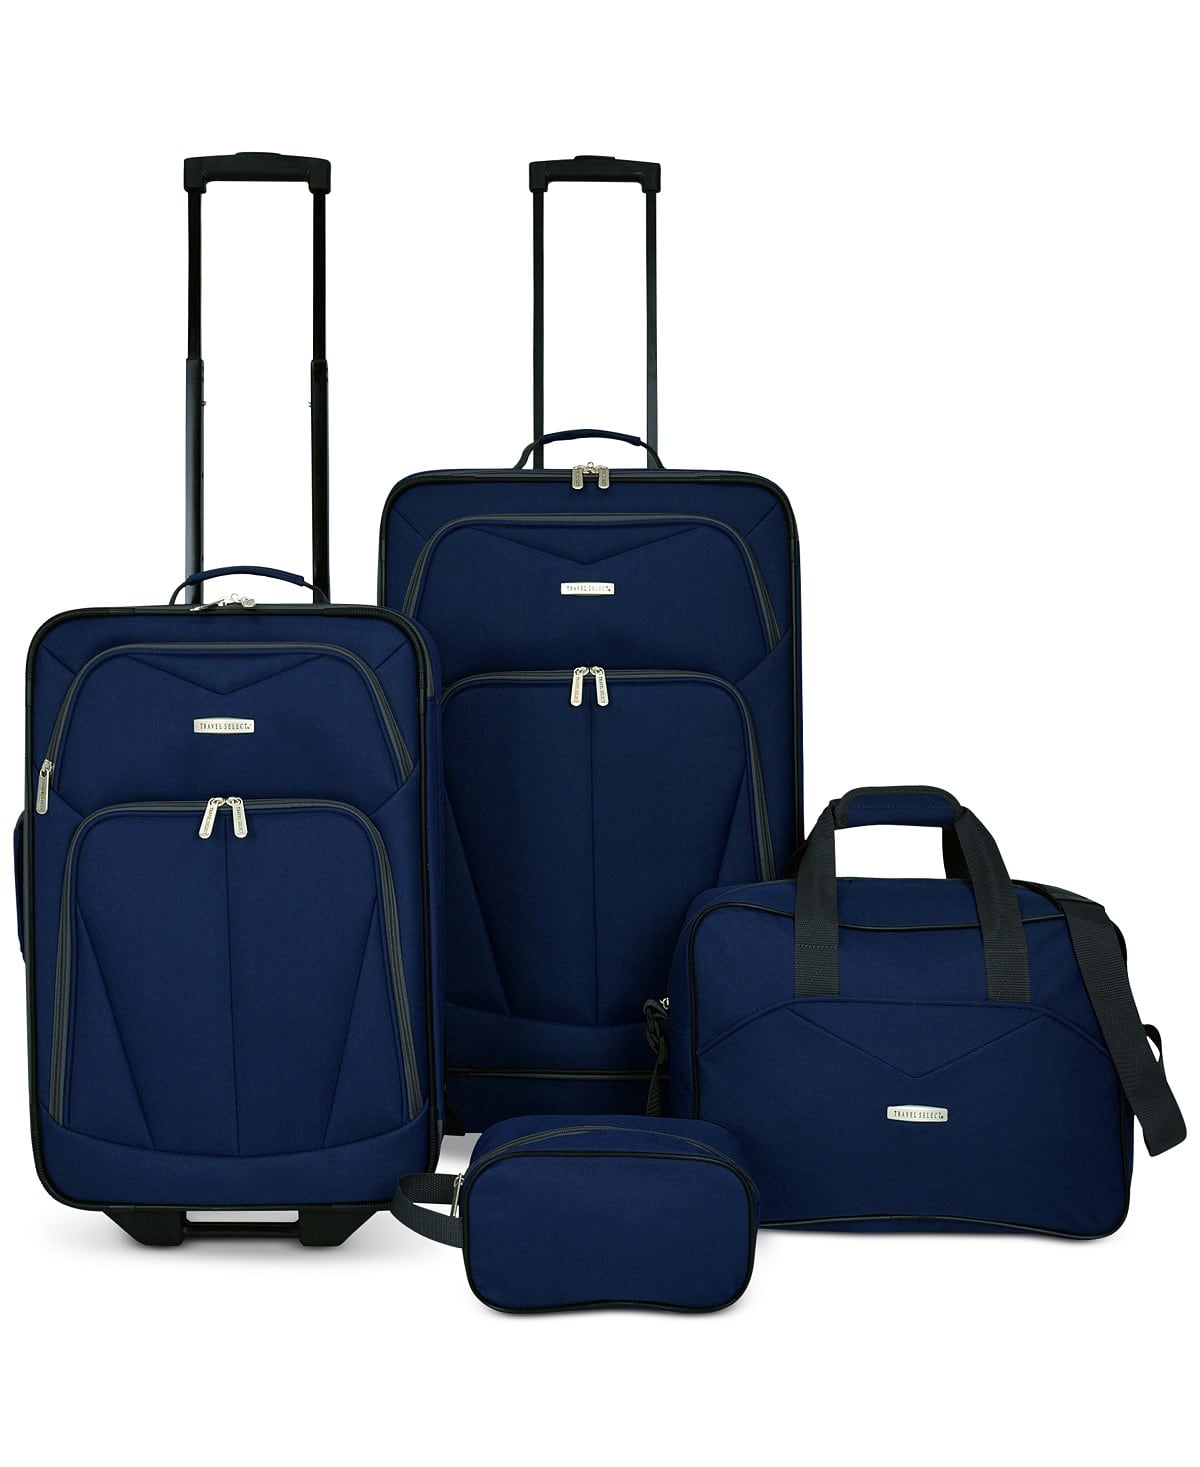 Kingsway 4-Pc Luggage Set for $49.99 + Free shipping at Macy's